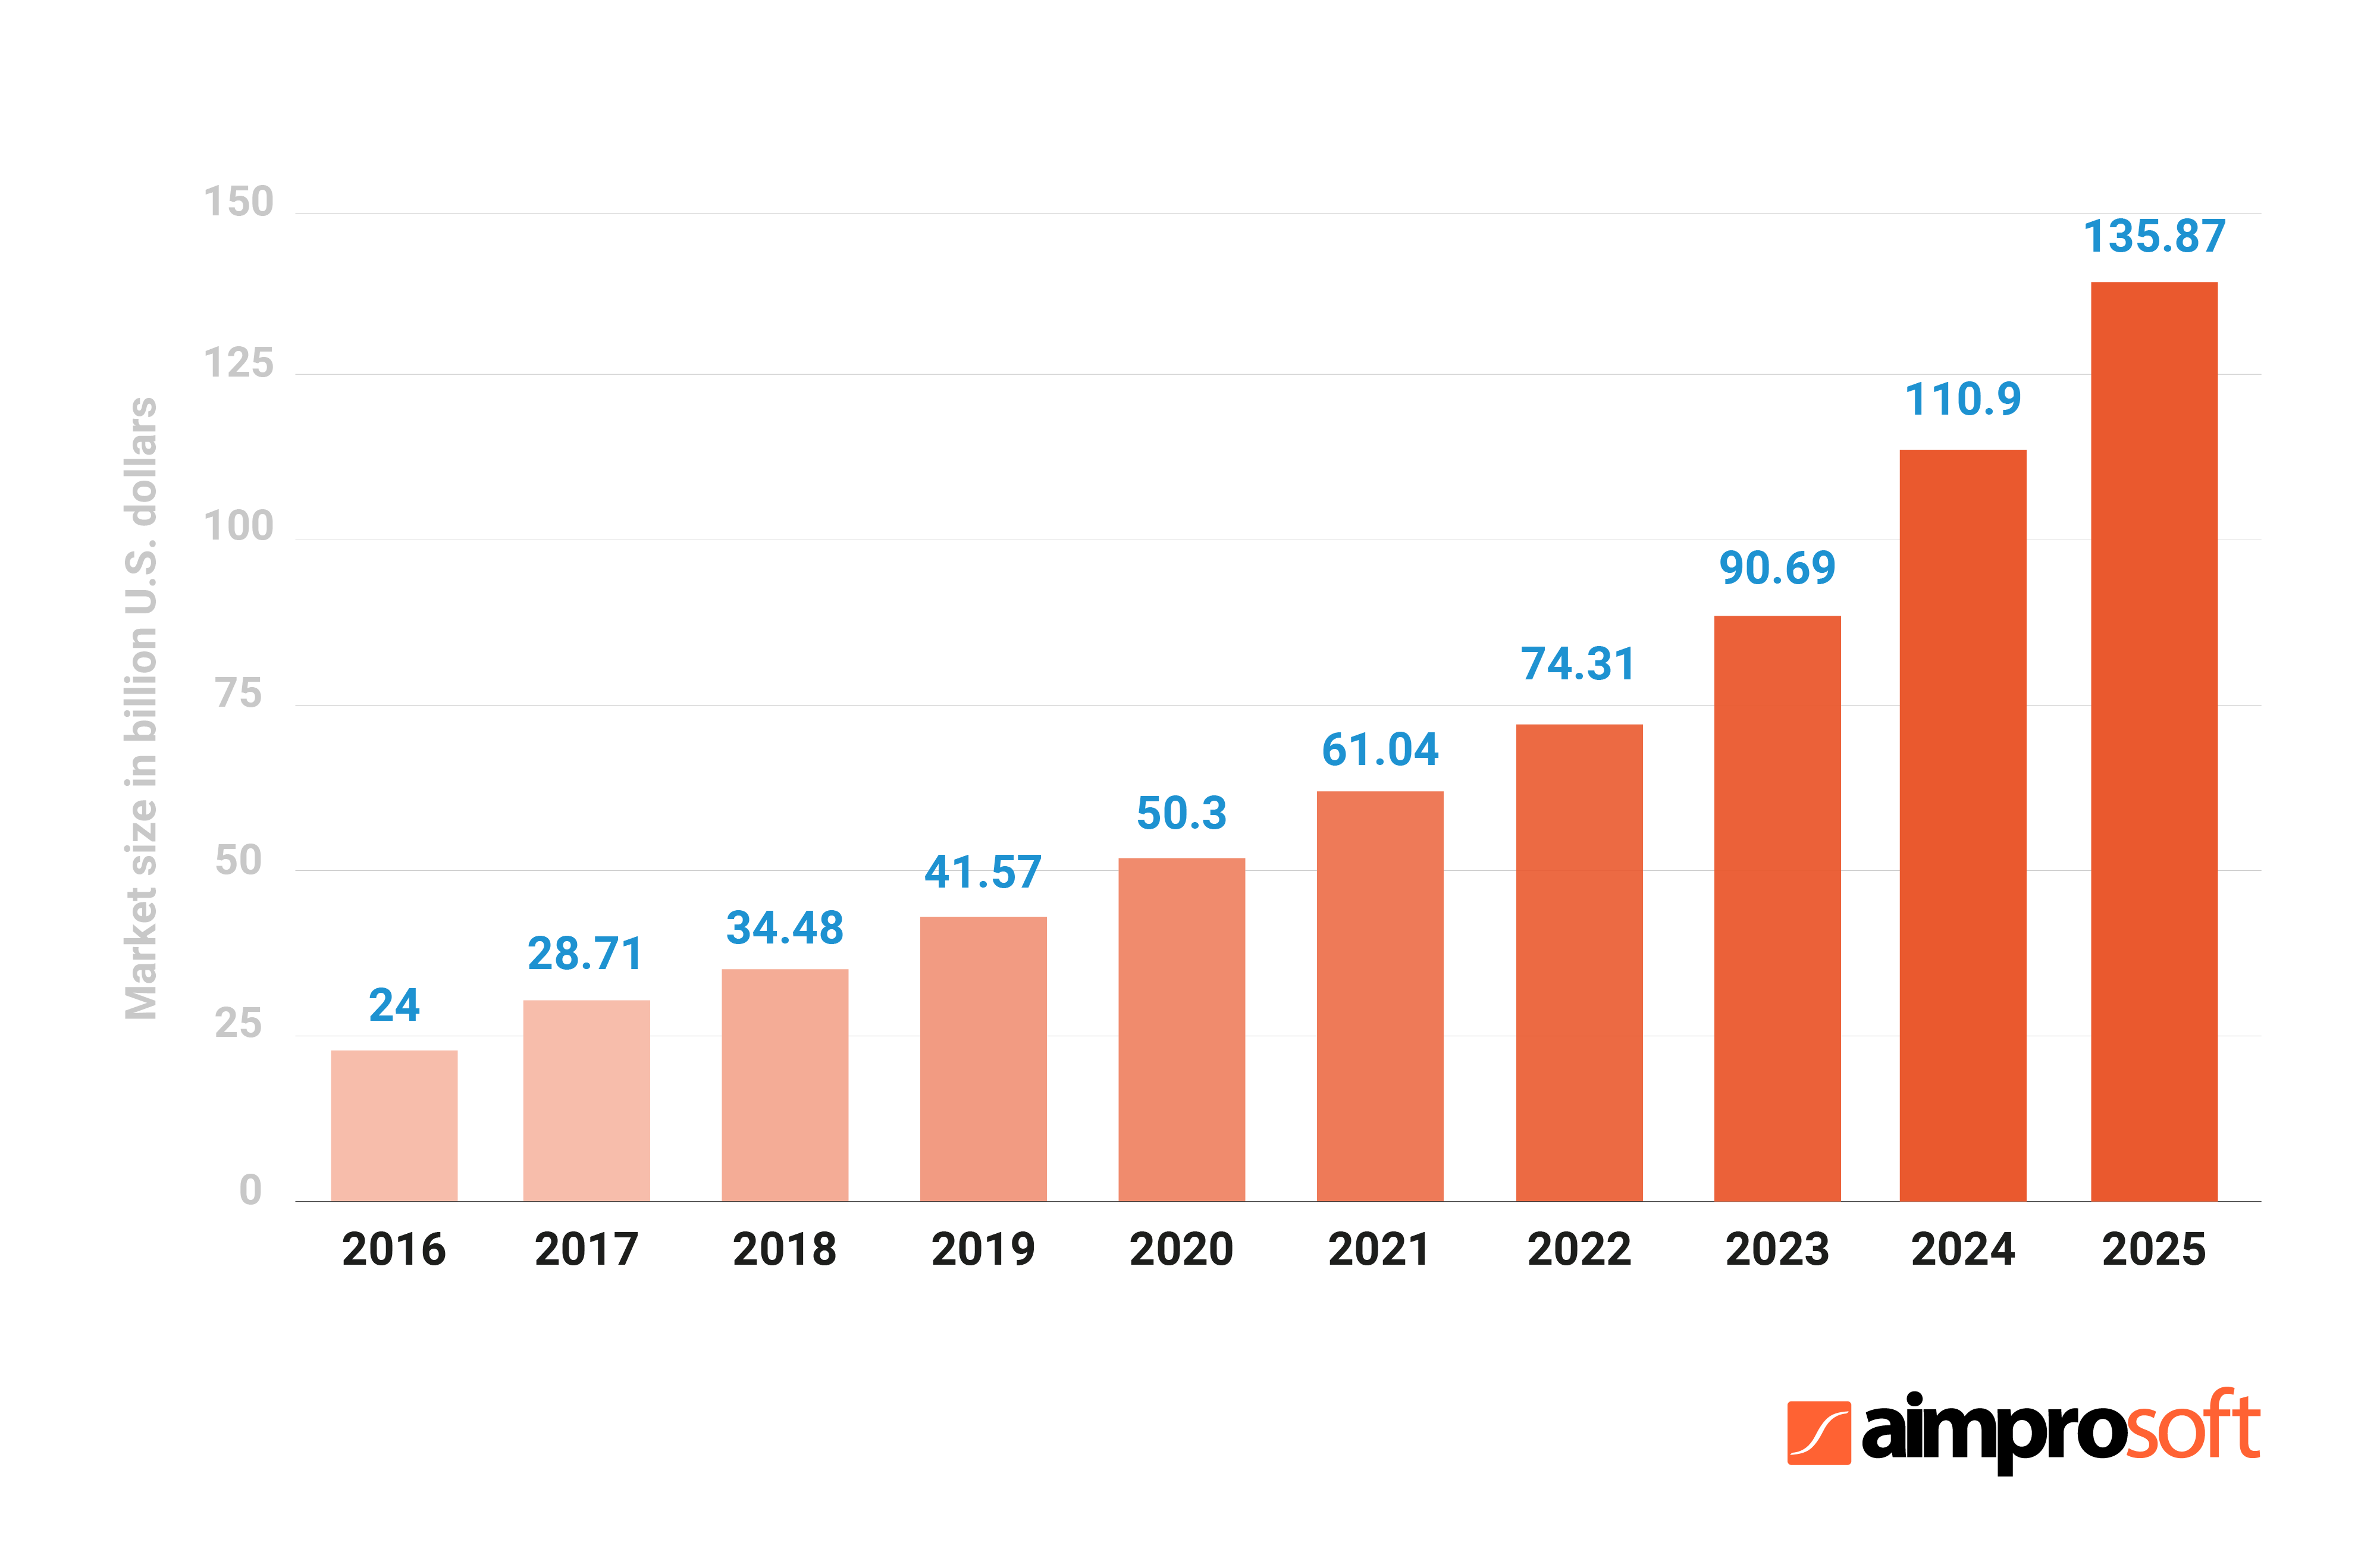 Projected size of the IoT in healthcare market worldwide from 2016 to 2025